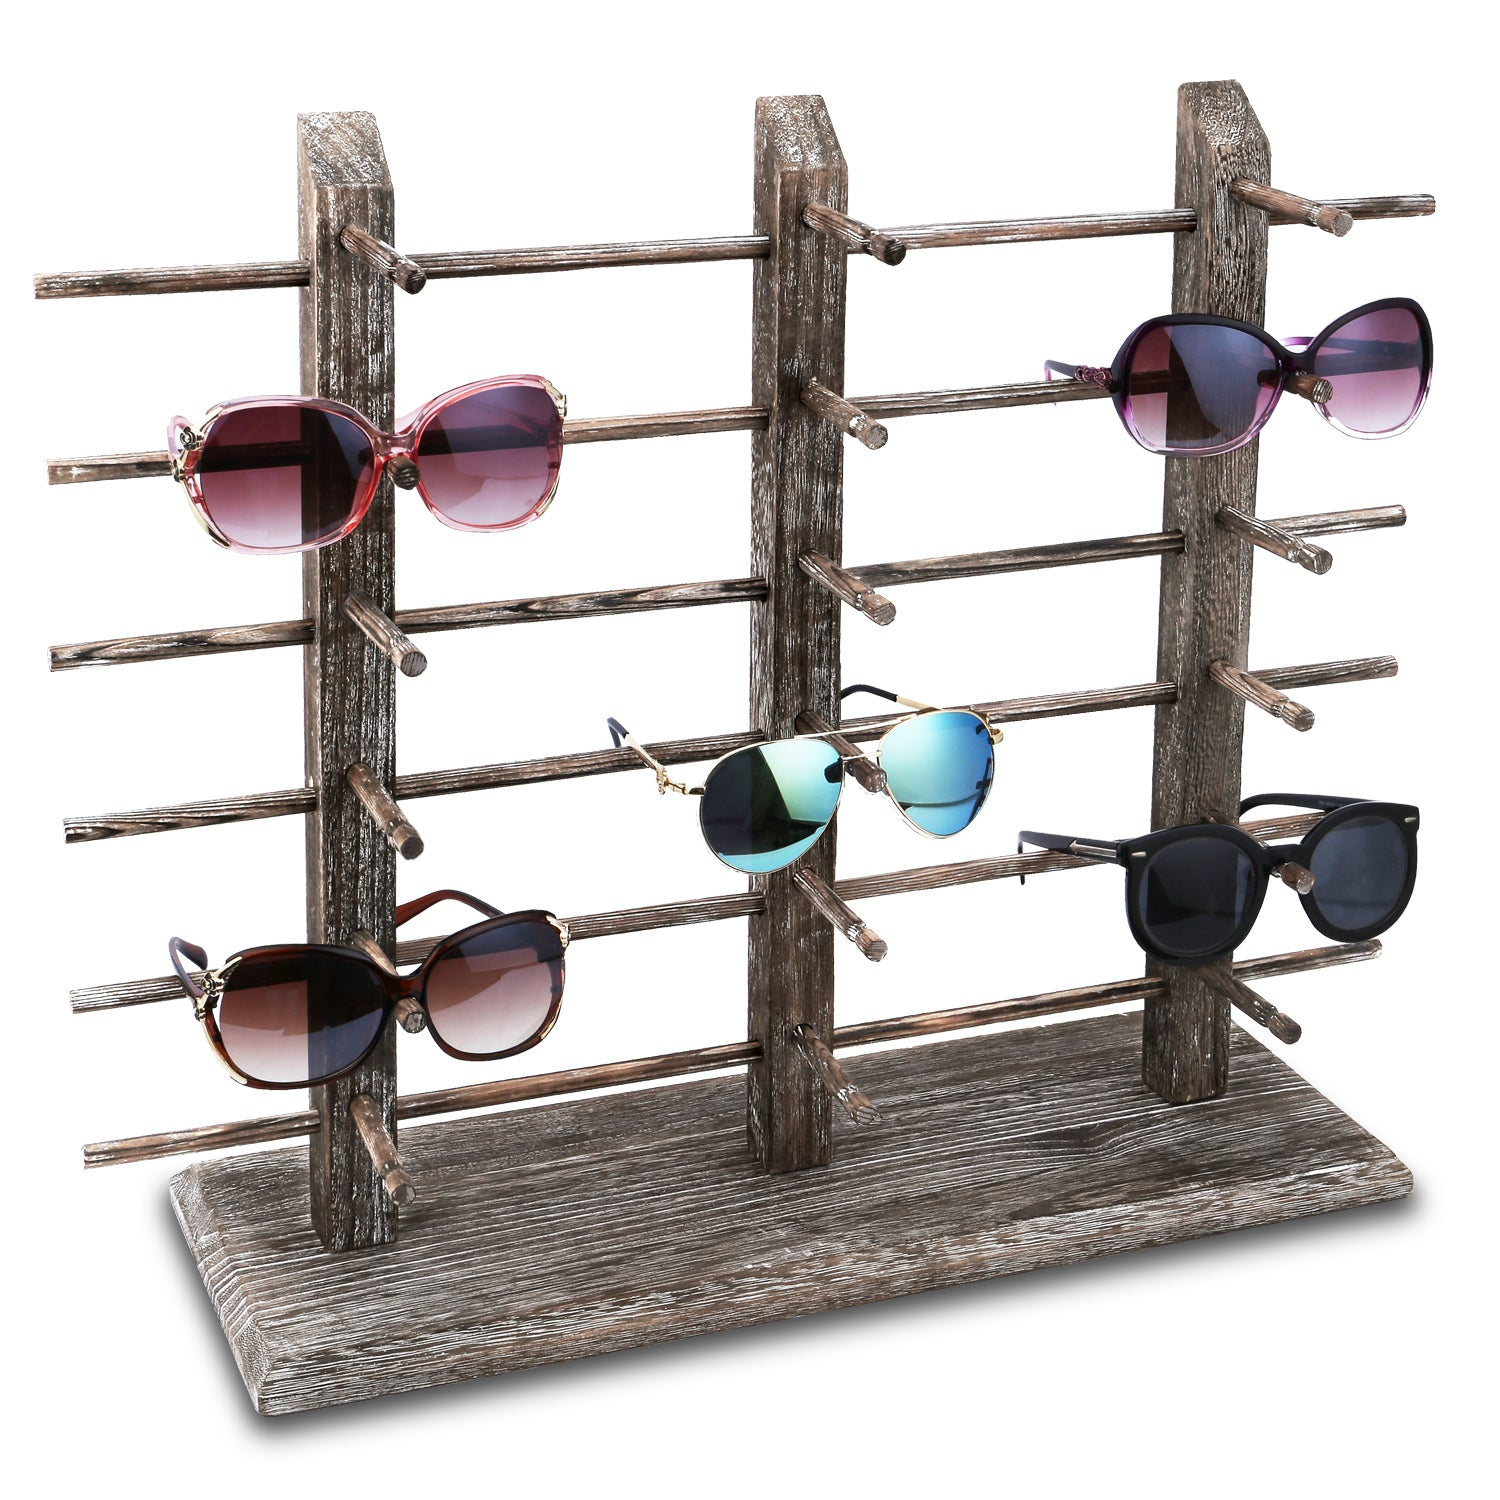 #WD-18CF Wooden Eyeglass Rack for Showcasing 18 Pairs of Glasses